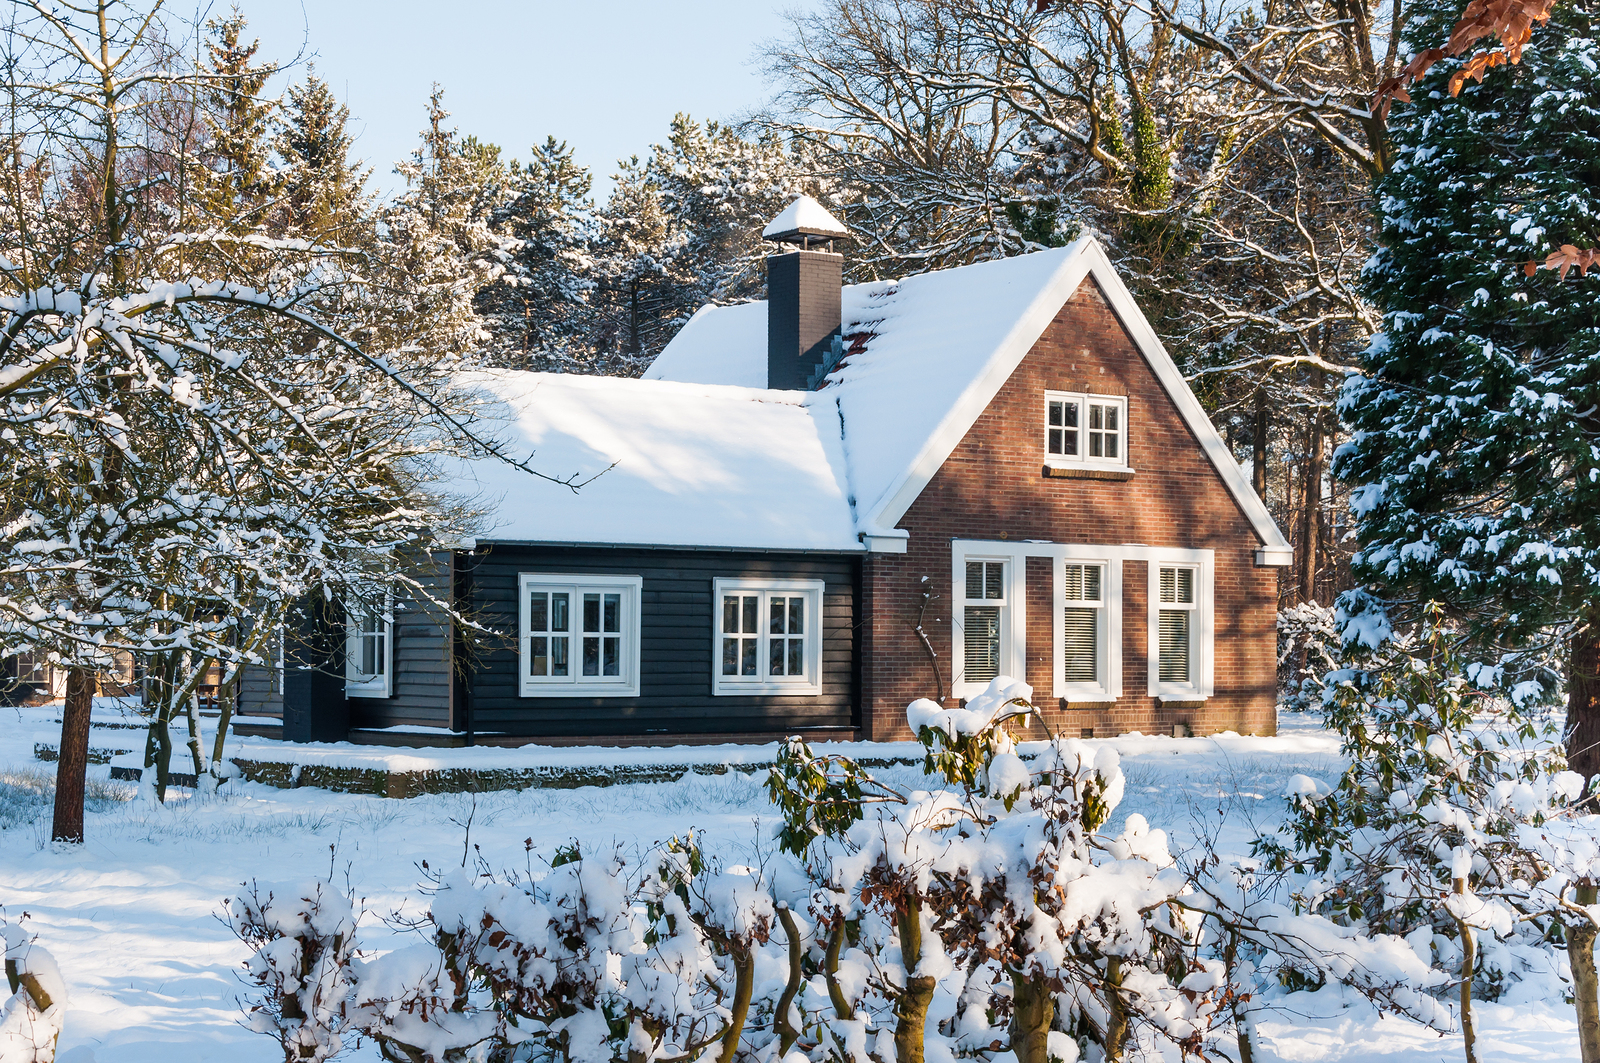 bigstock-Snowy-Wooden-House-In-The-Fore-41624890